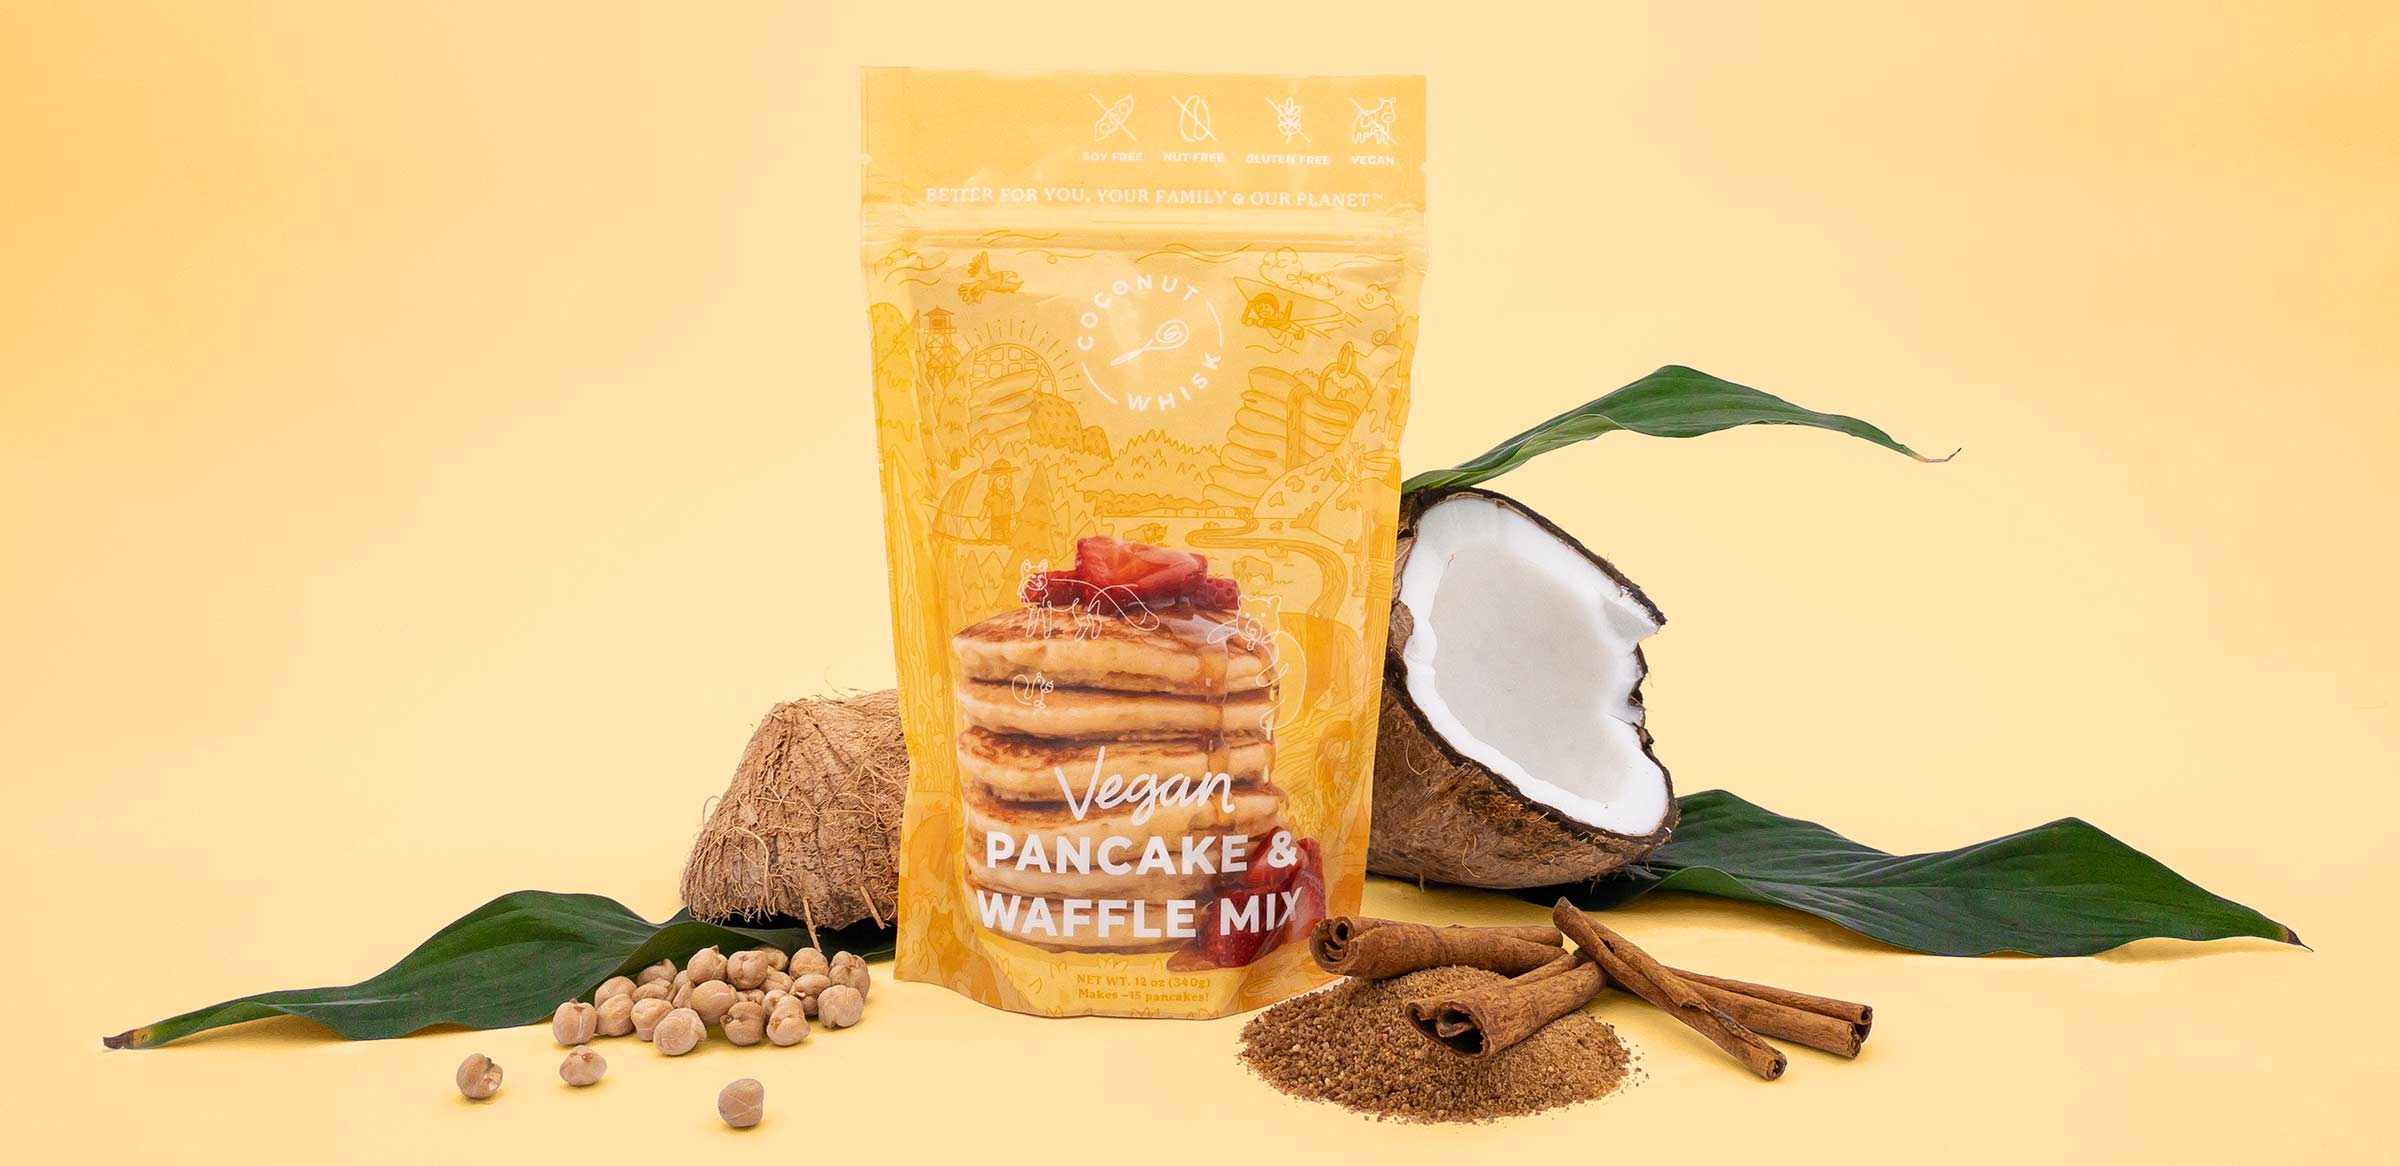 coconut whisk pancake waffle packaging design